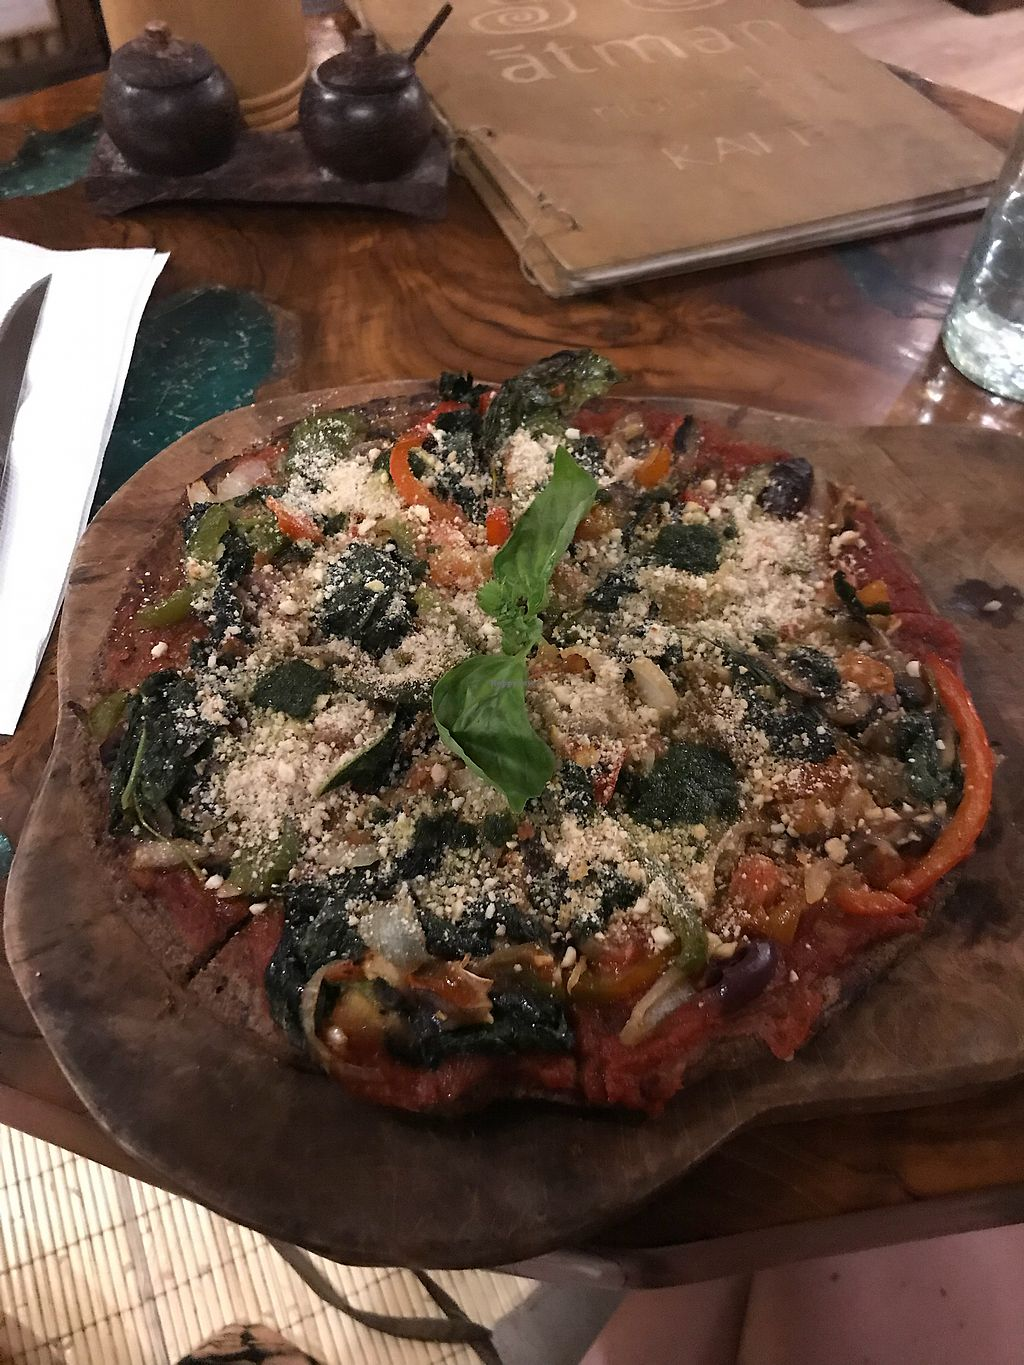 """Photo of Atman Nourish Kafe  by <a href=""""/members/profile/LolaNachtigall"""">LolaNachtigall</a> <br/>Vegan GF Pizza <br/> March 16, 2018  - <a href='/contact/abuse/image/91940/371238'>Report</a>"""